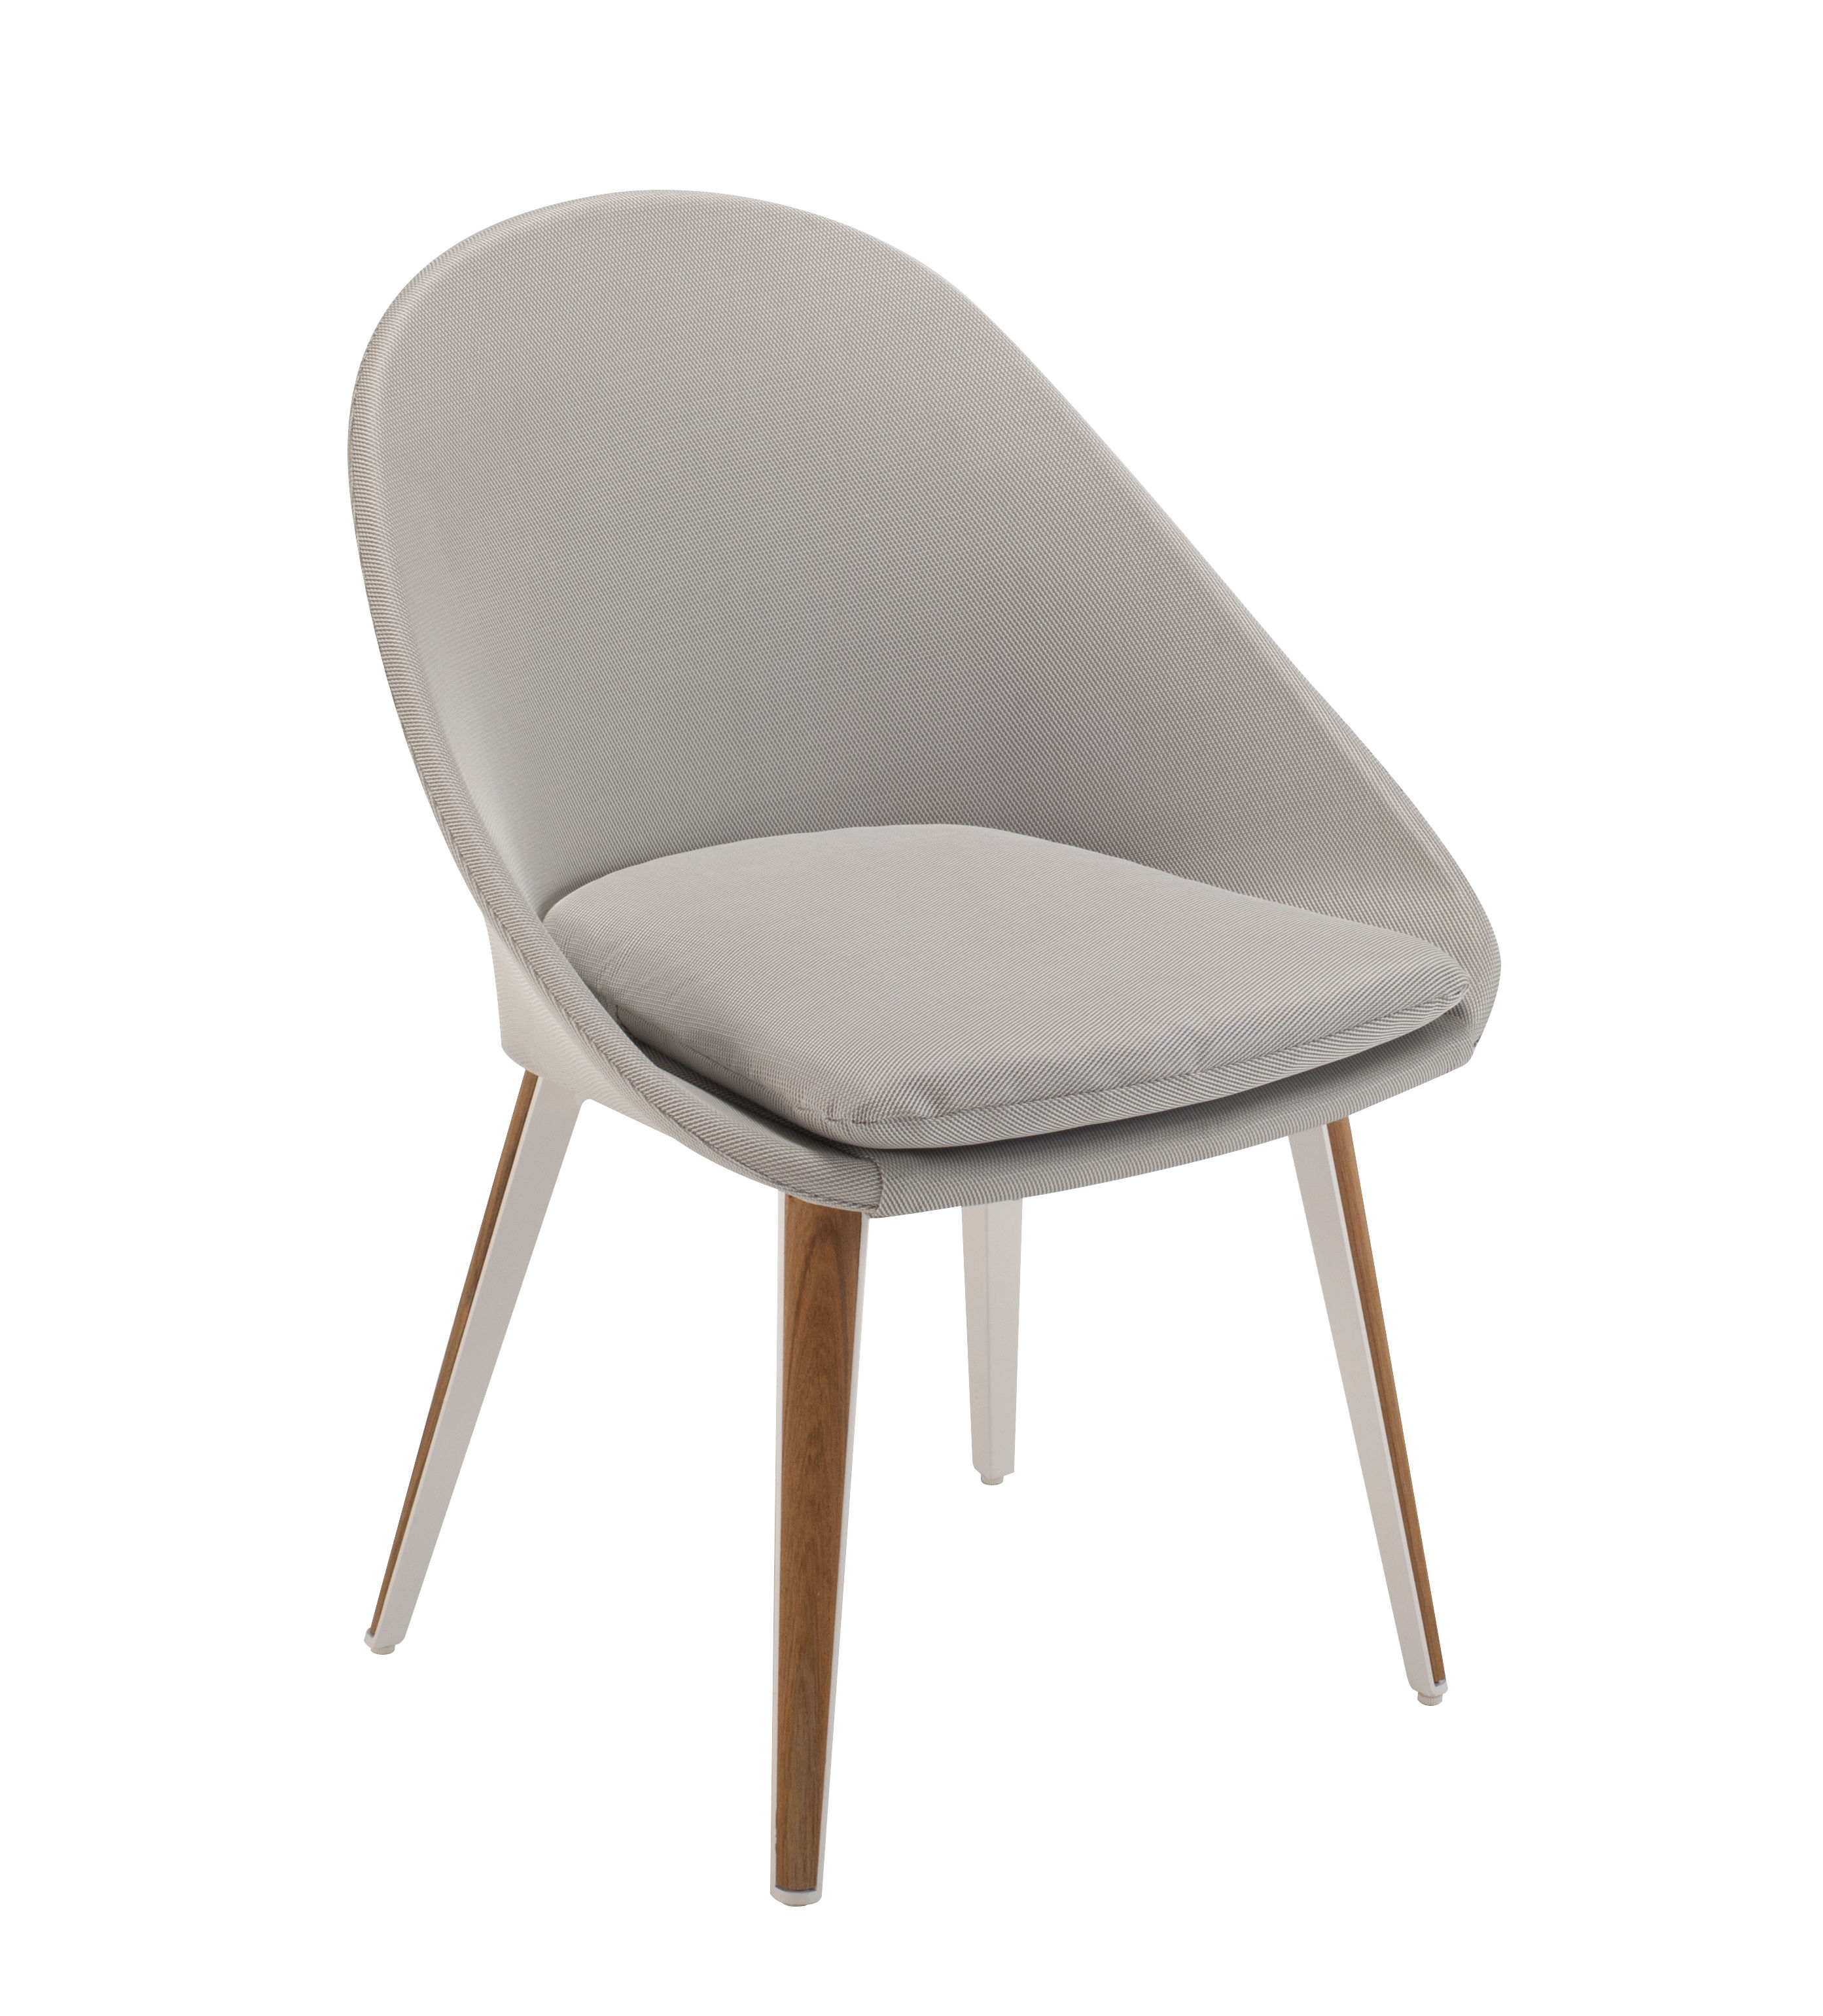 Furniture - Chairs - Vanity Padded armchair - Fabric & teak by Vlaemynck - Grey / White & teak - Lacquered aluminium, Polyurethane foam, Sling canvas, Teak